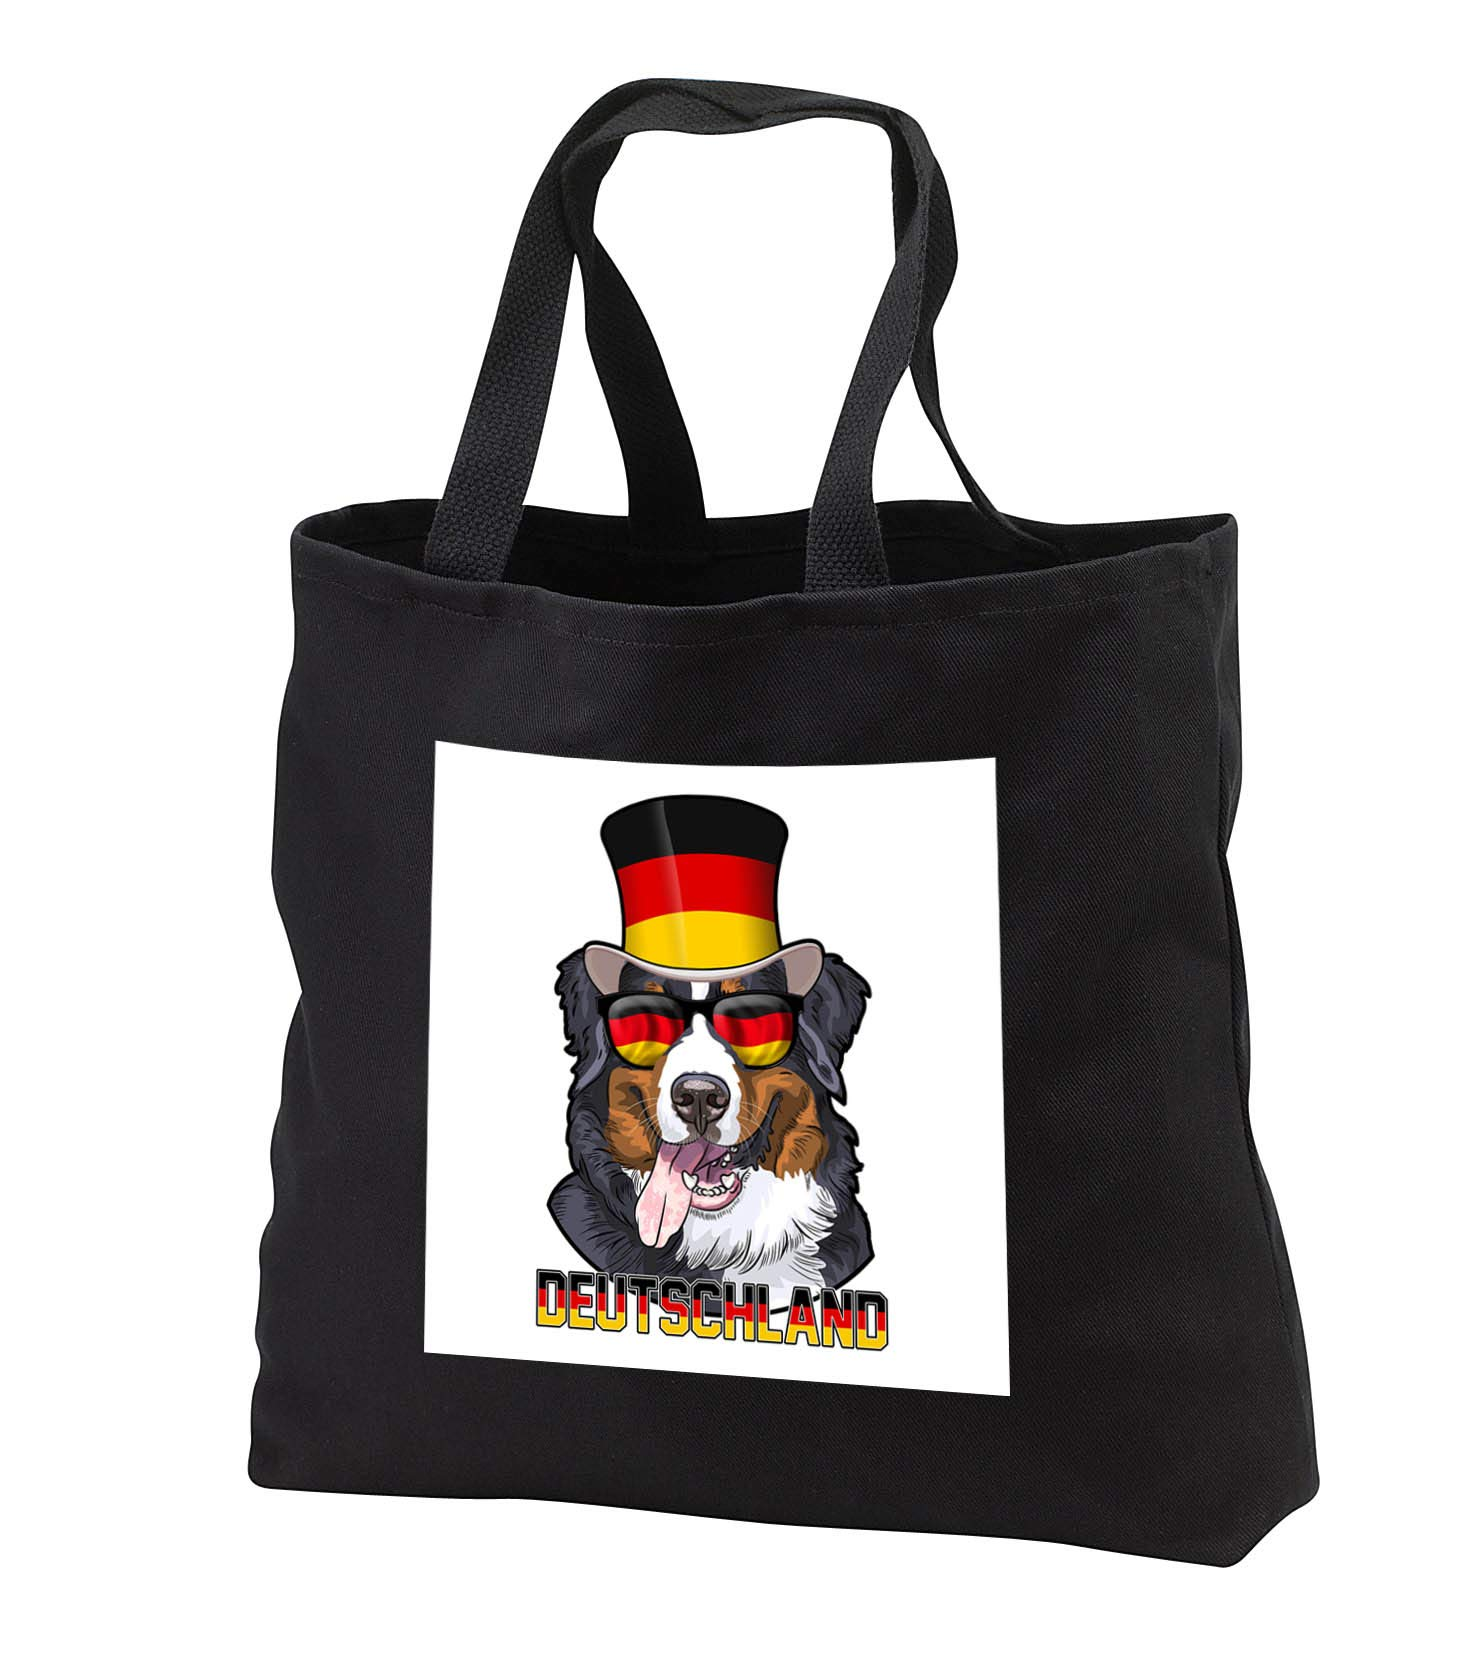 Carsten Reisinger - Illustrations - Germany Bernese Mountain Dog with German Flag Top Hat and Sunglasses - Tote Bags - Black Tote Bag JUMBO 20w x 15h x 5d (tb_293423_3)